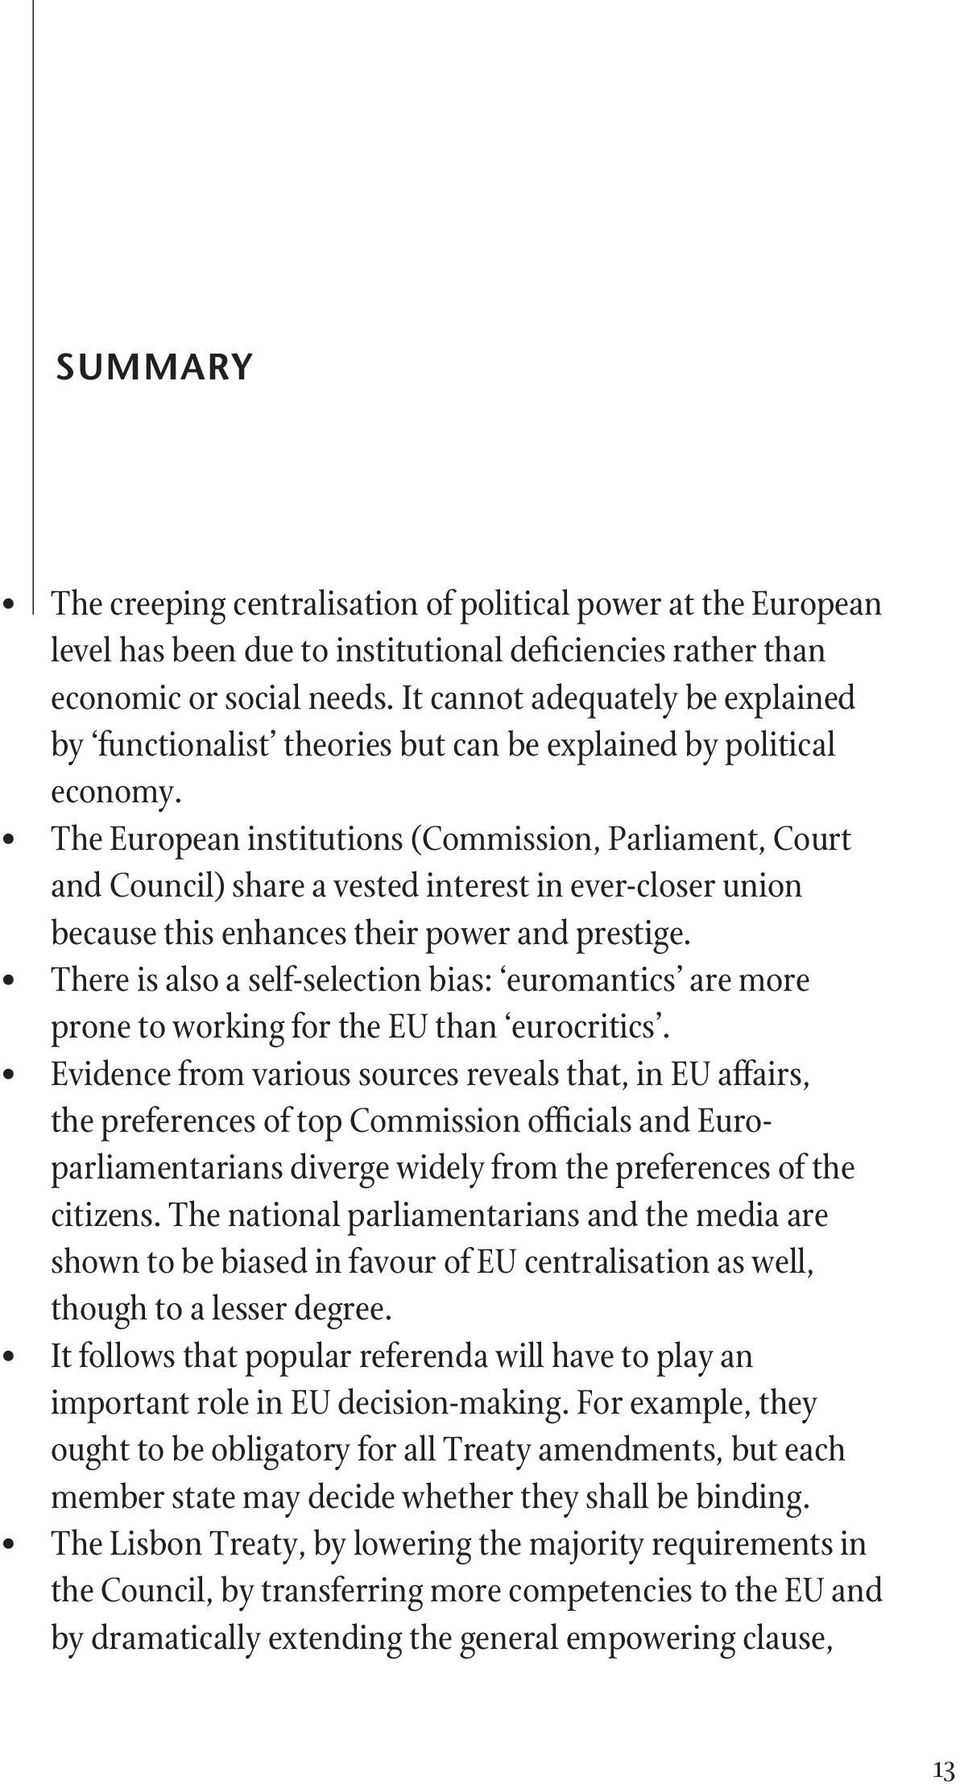 The European institutions (Commission, Parliament, Court and Council) share a vested interest in ever-closer union because this enhances their power and prestige.